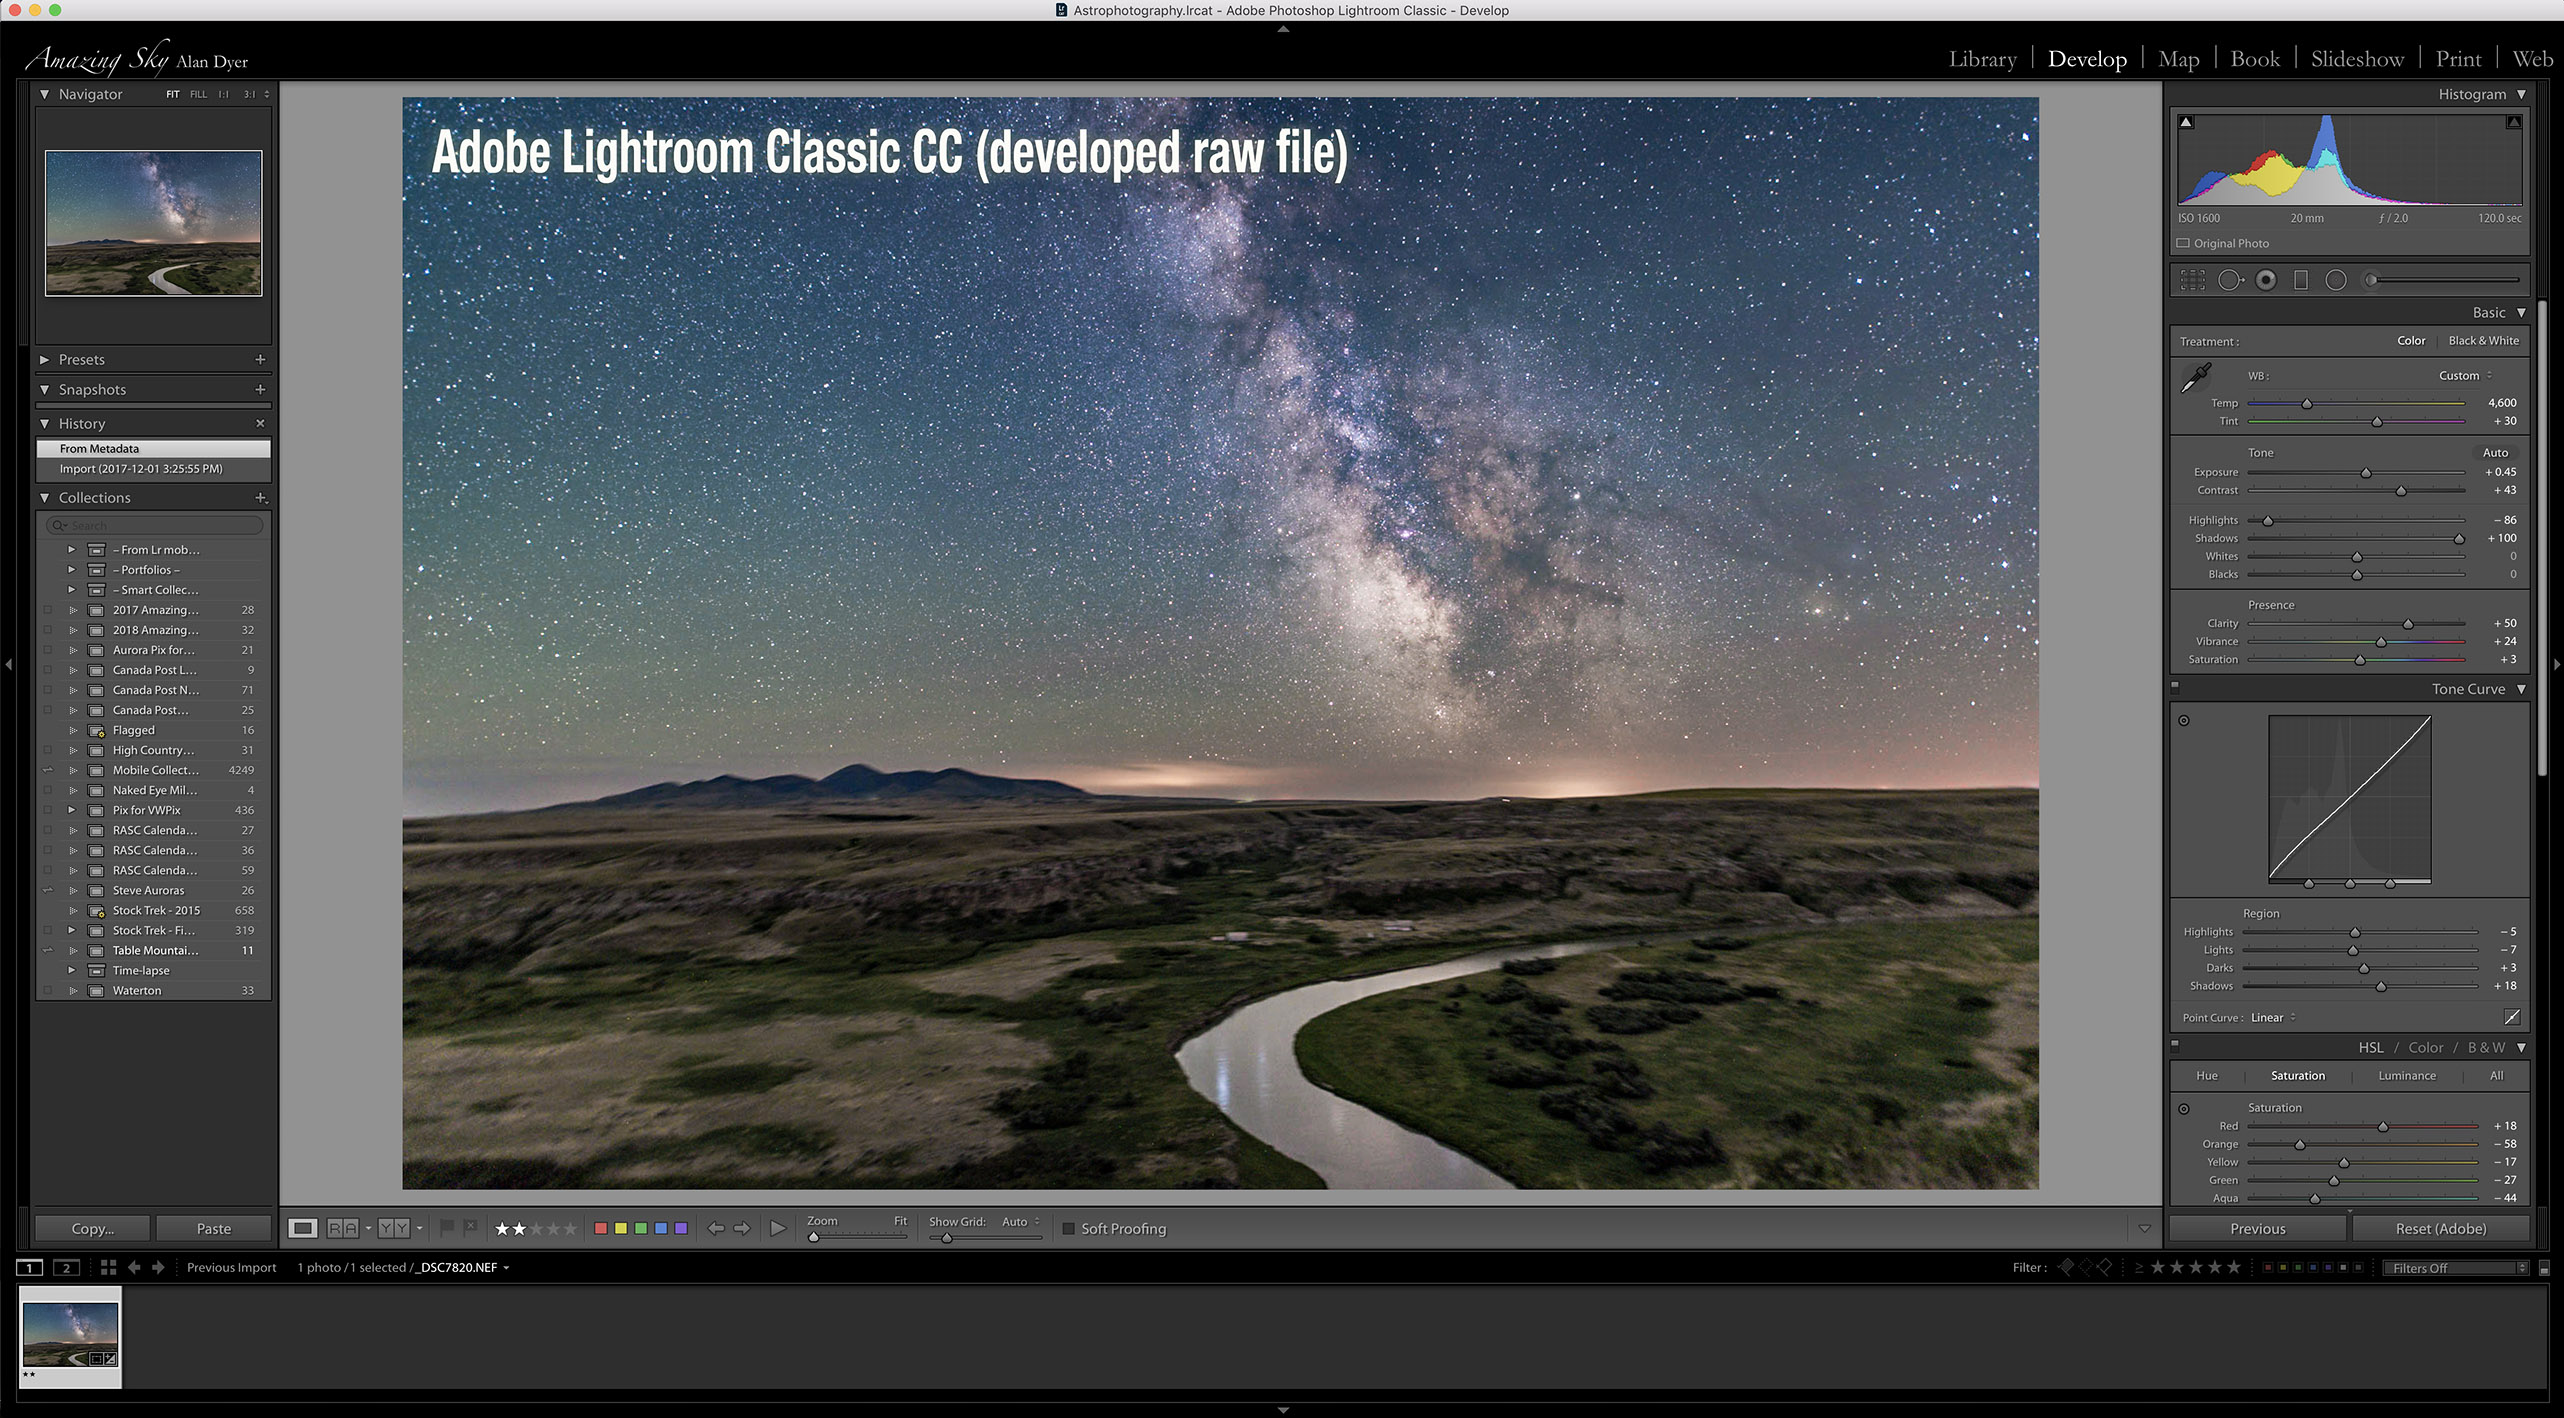 4-Adobe Lightroom